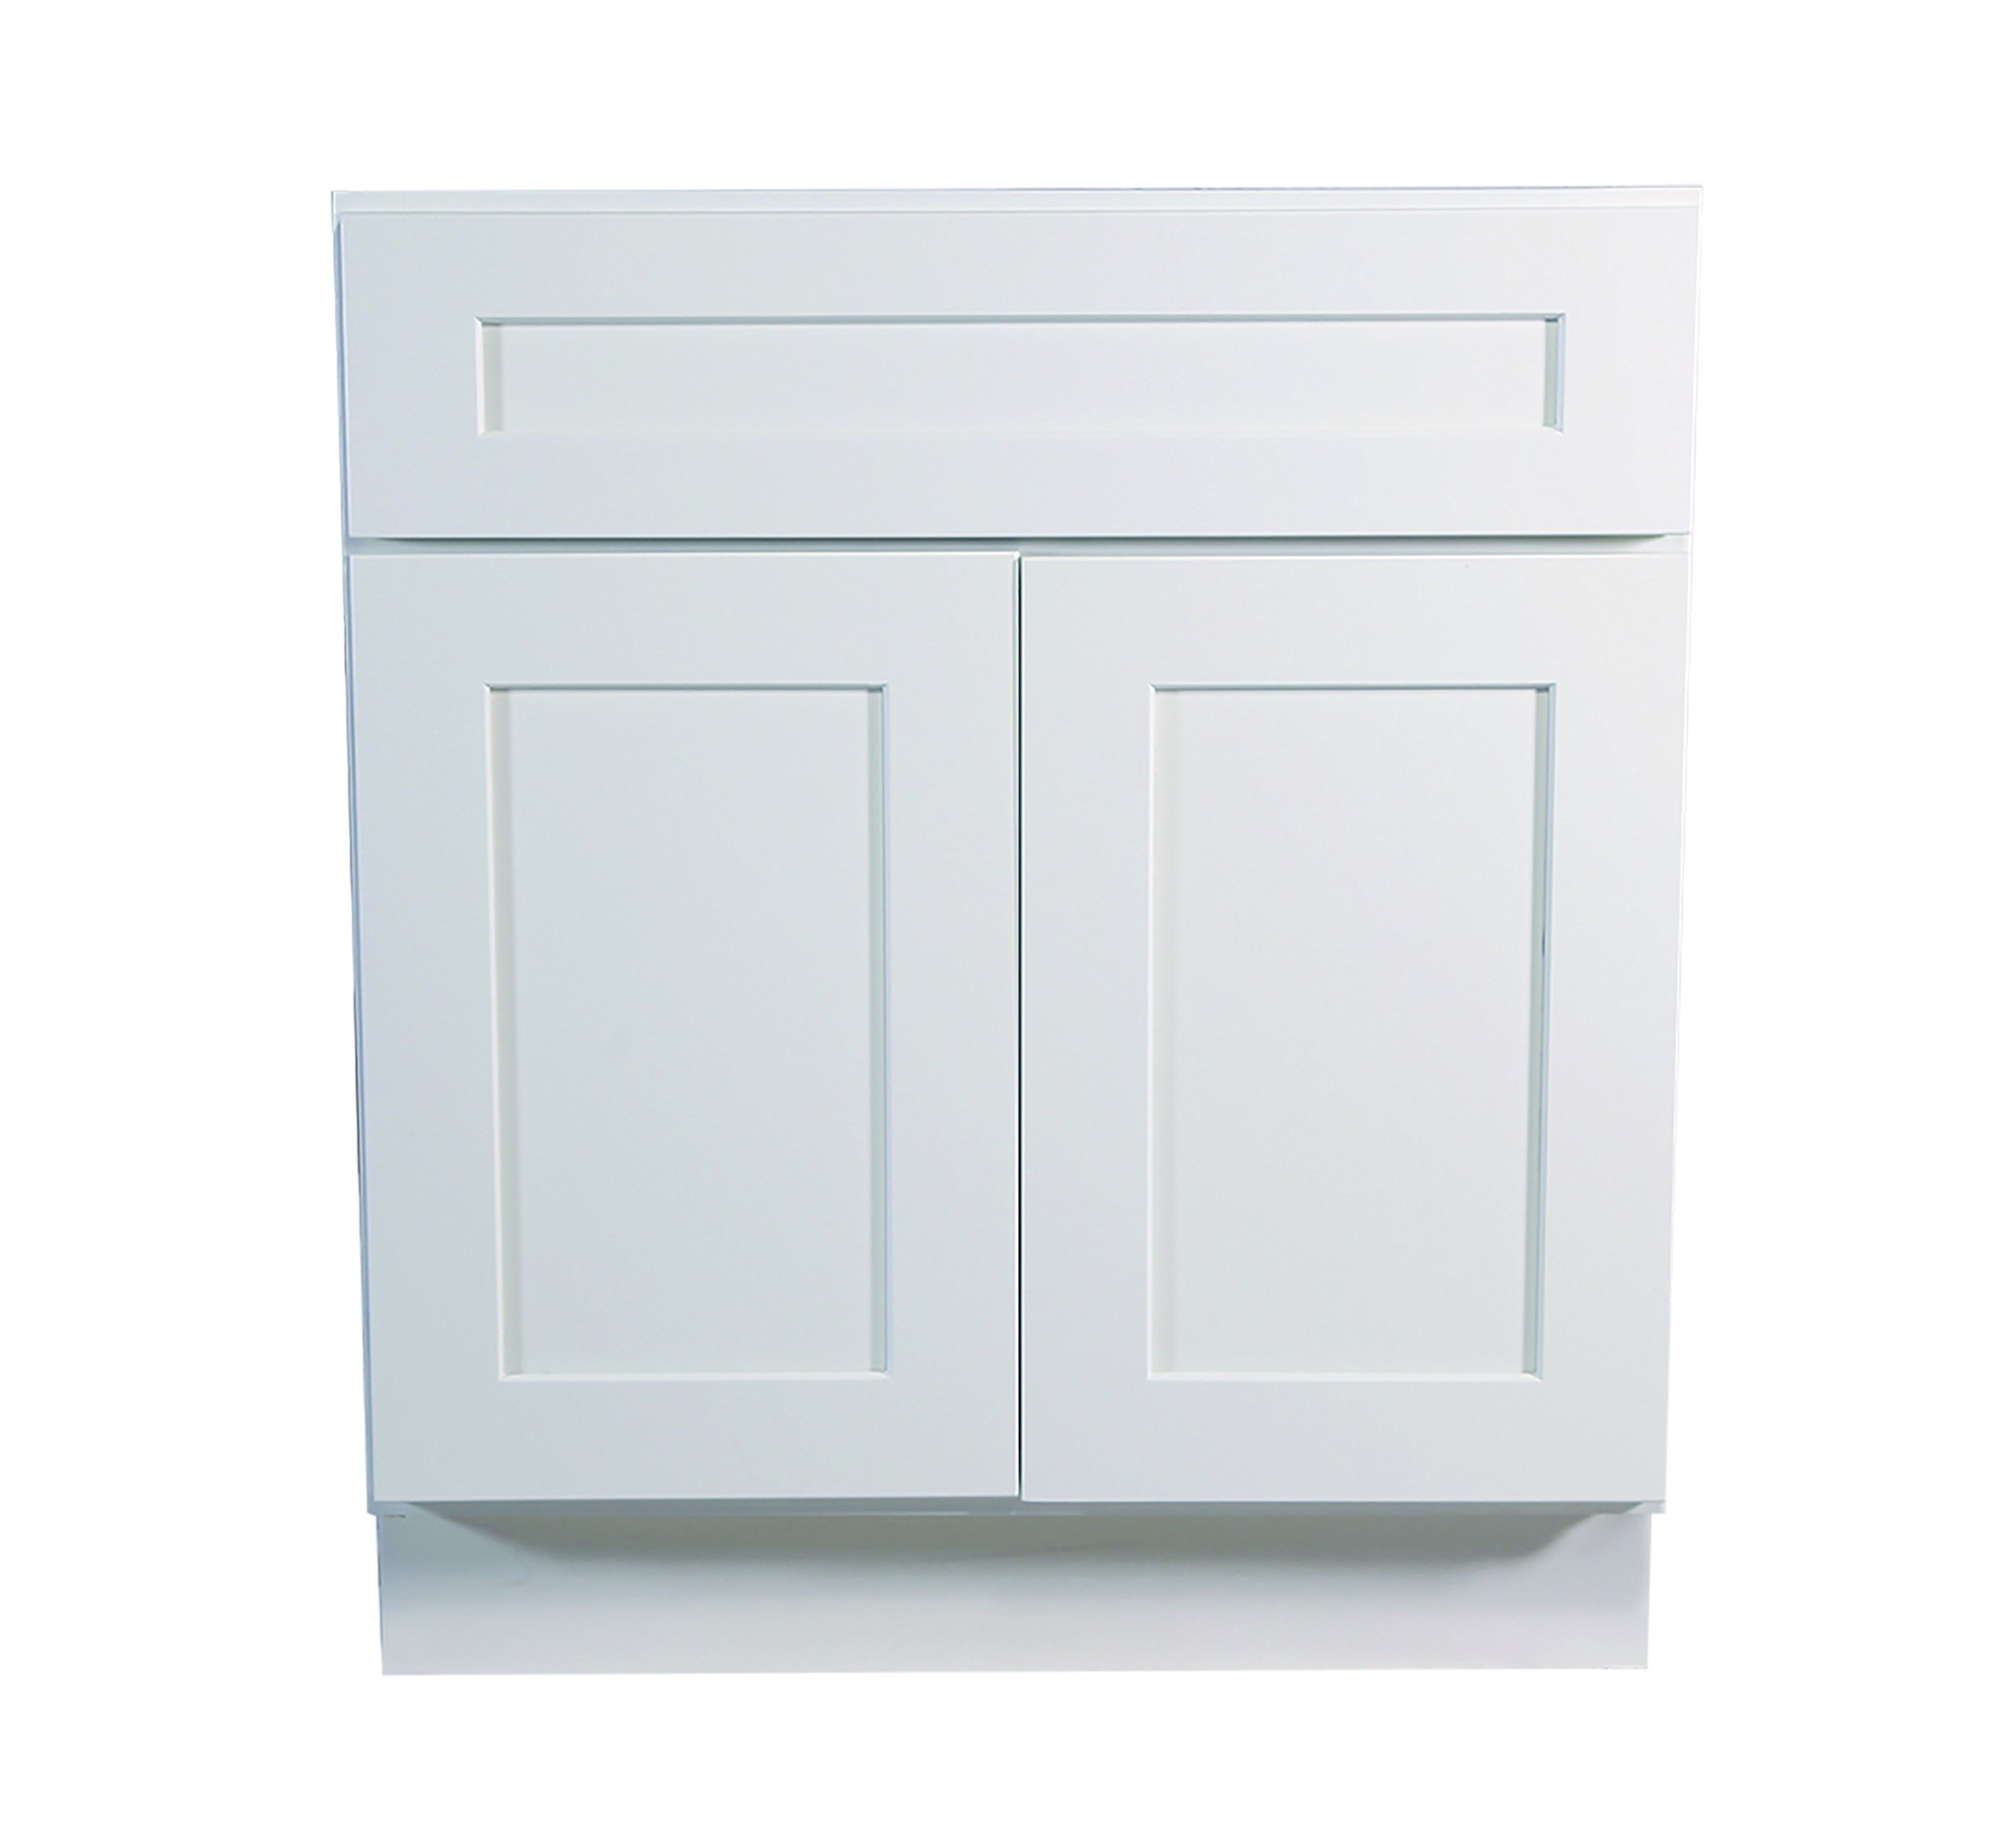 Design House 561365 Brookings 24-Inch Base Cabinet, White Shaker by Design House